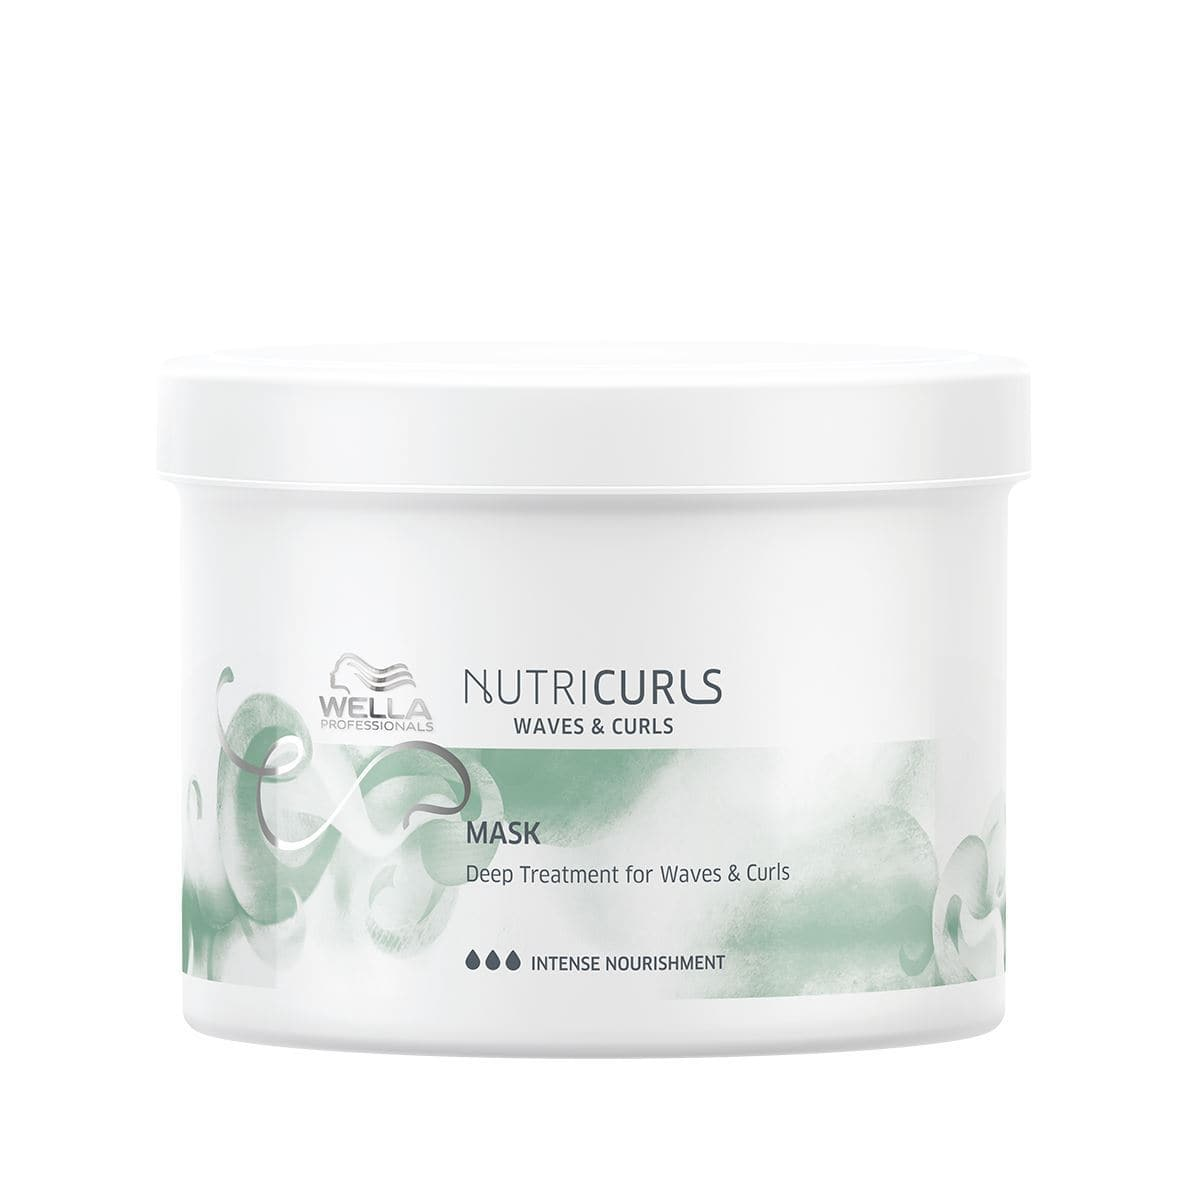 Deep Treatment for Waves & Curls | NUTRICURLS | WELLA PROFESSIONAL | SHSalons.com